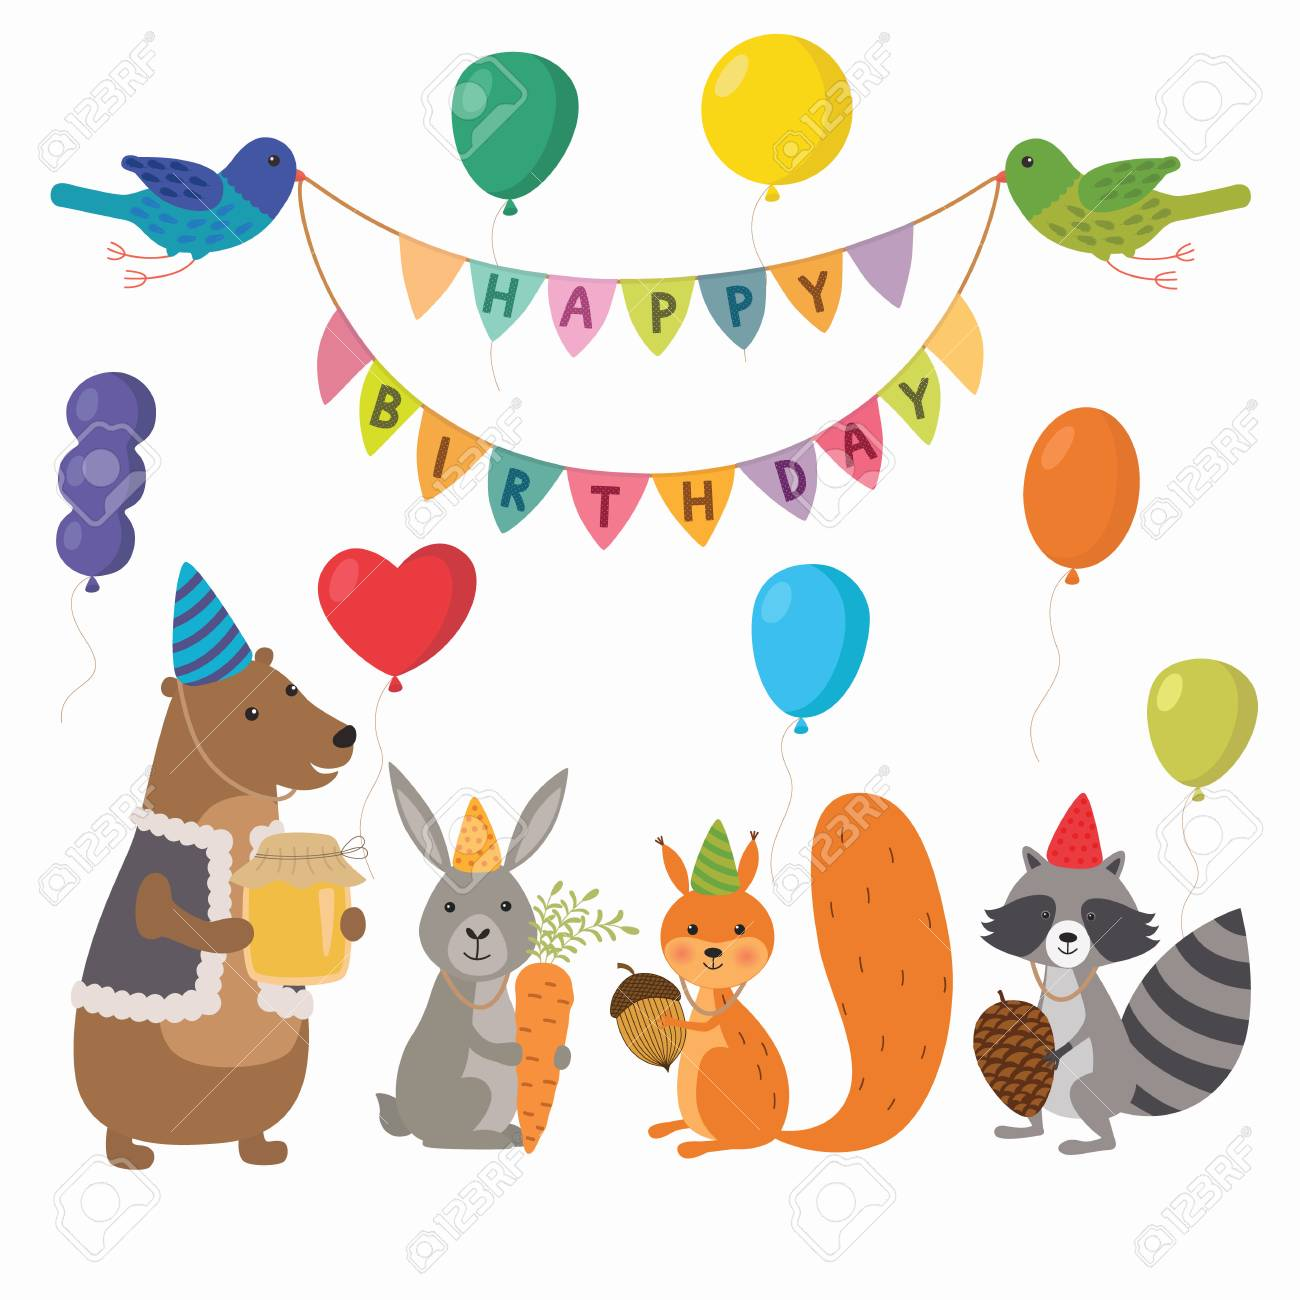 Cute cartoon forest animals illustration for birthday card template.